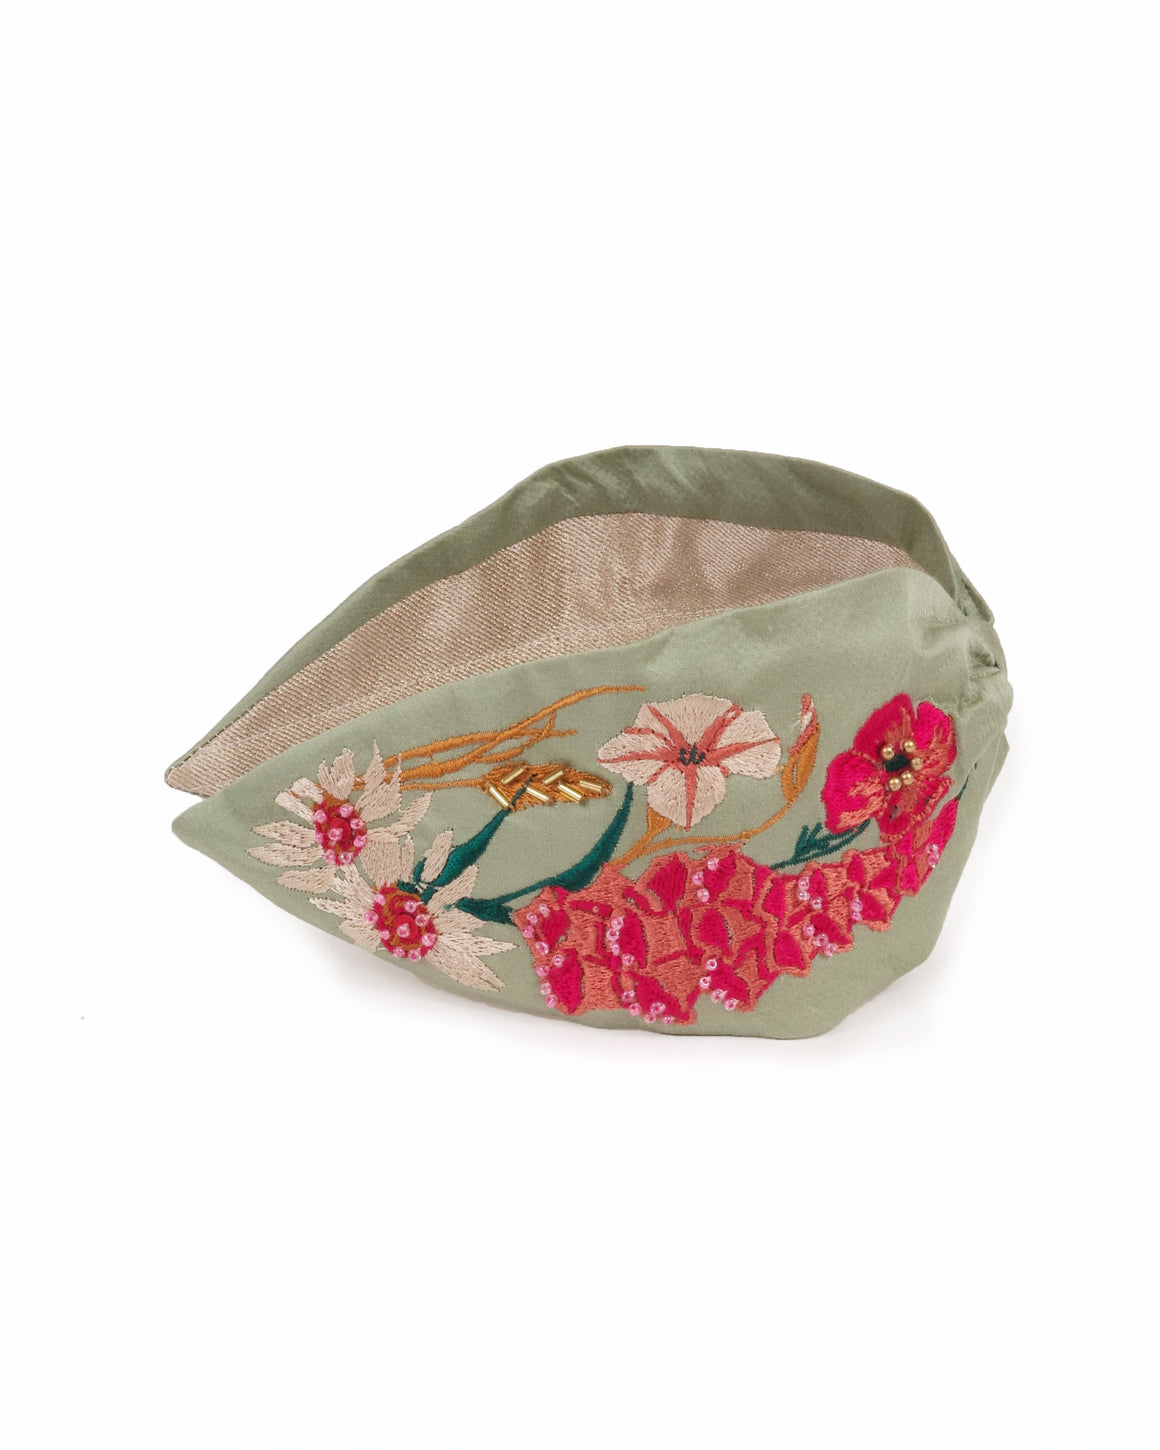 satin modal mint embroidered headband with  bright coral flowers